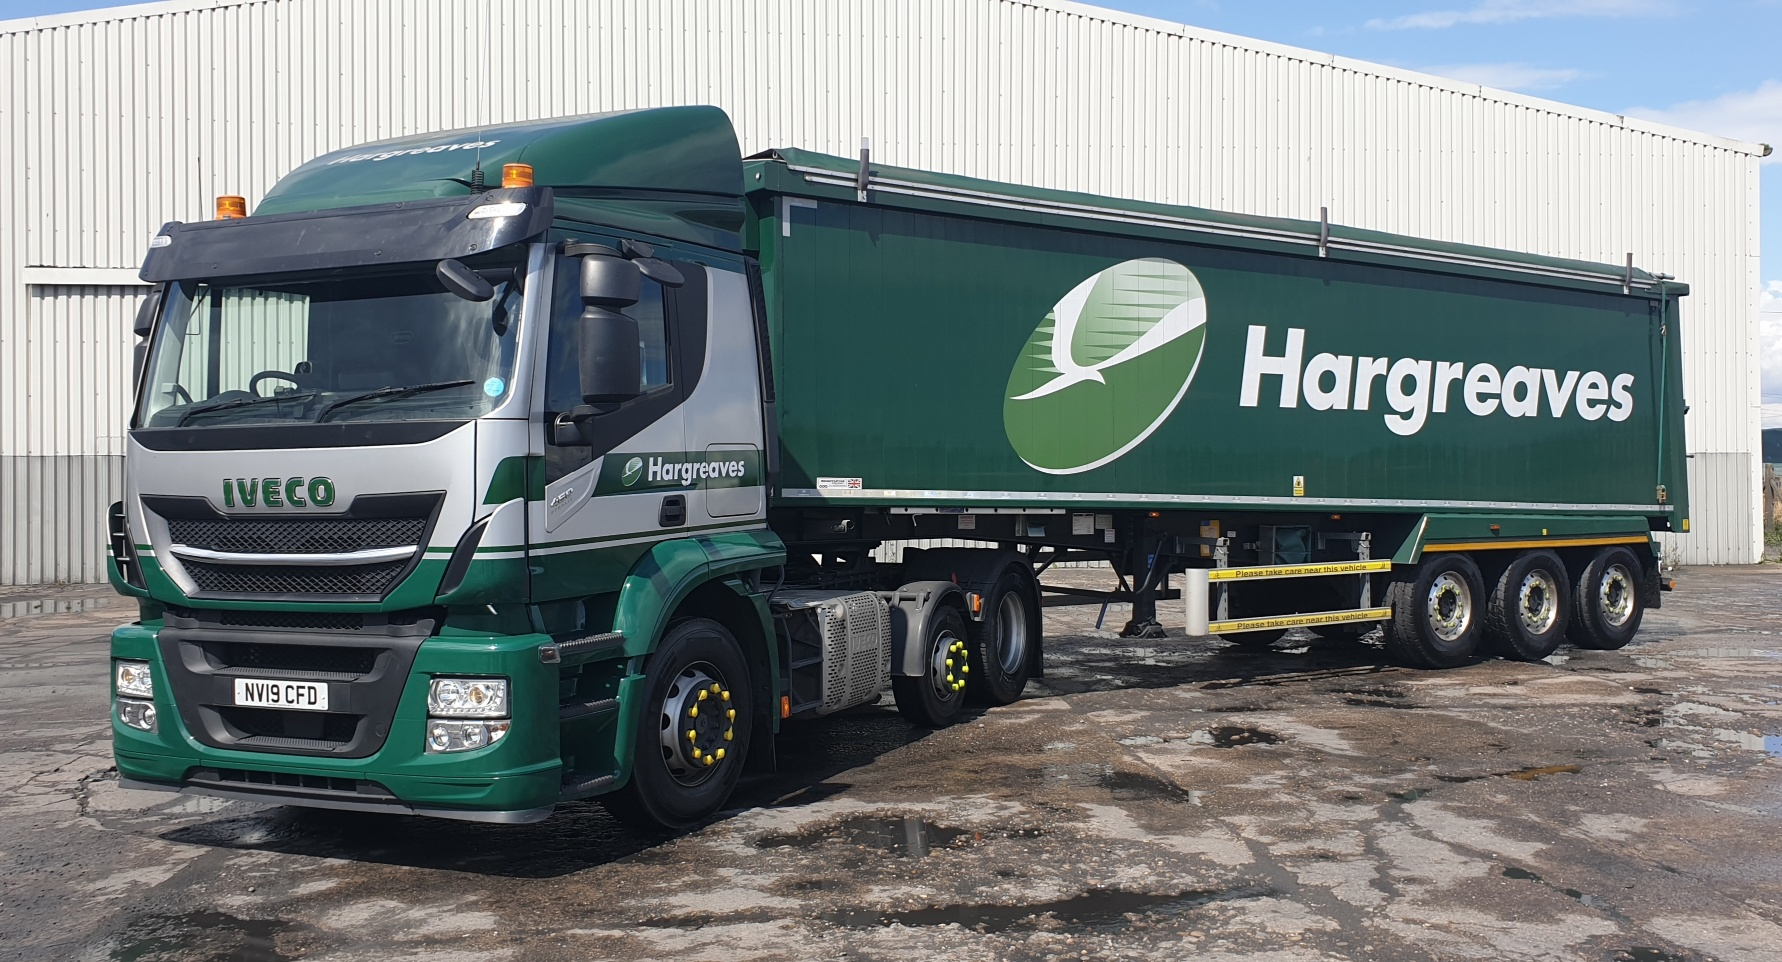 Leading company chooses North East Truck and Van